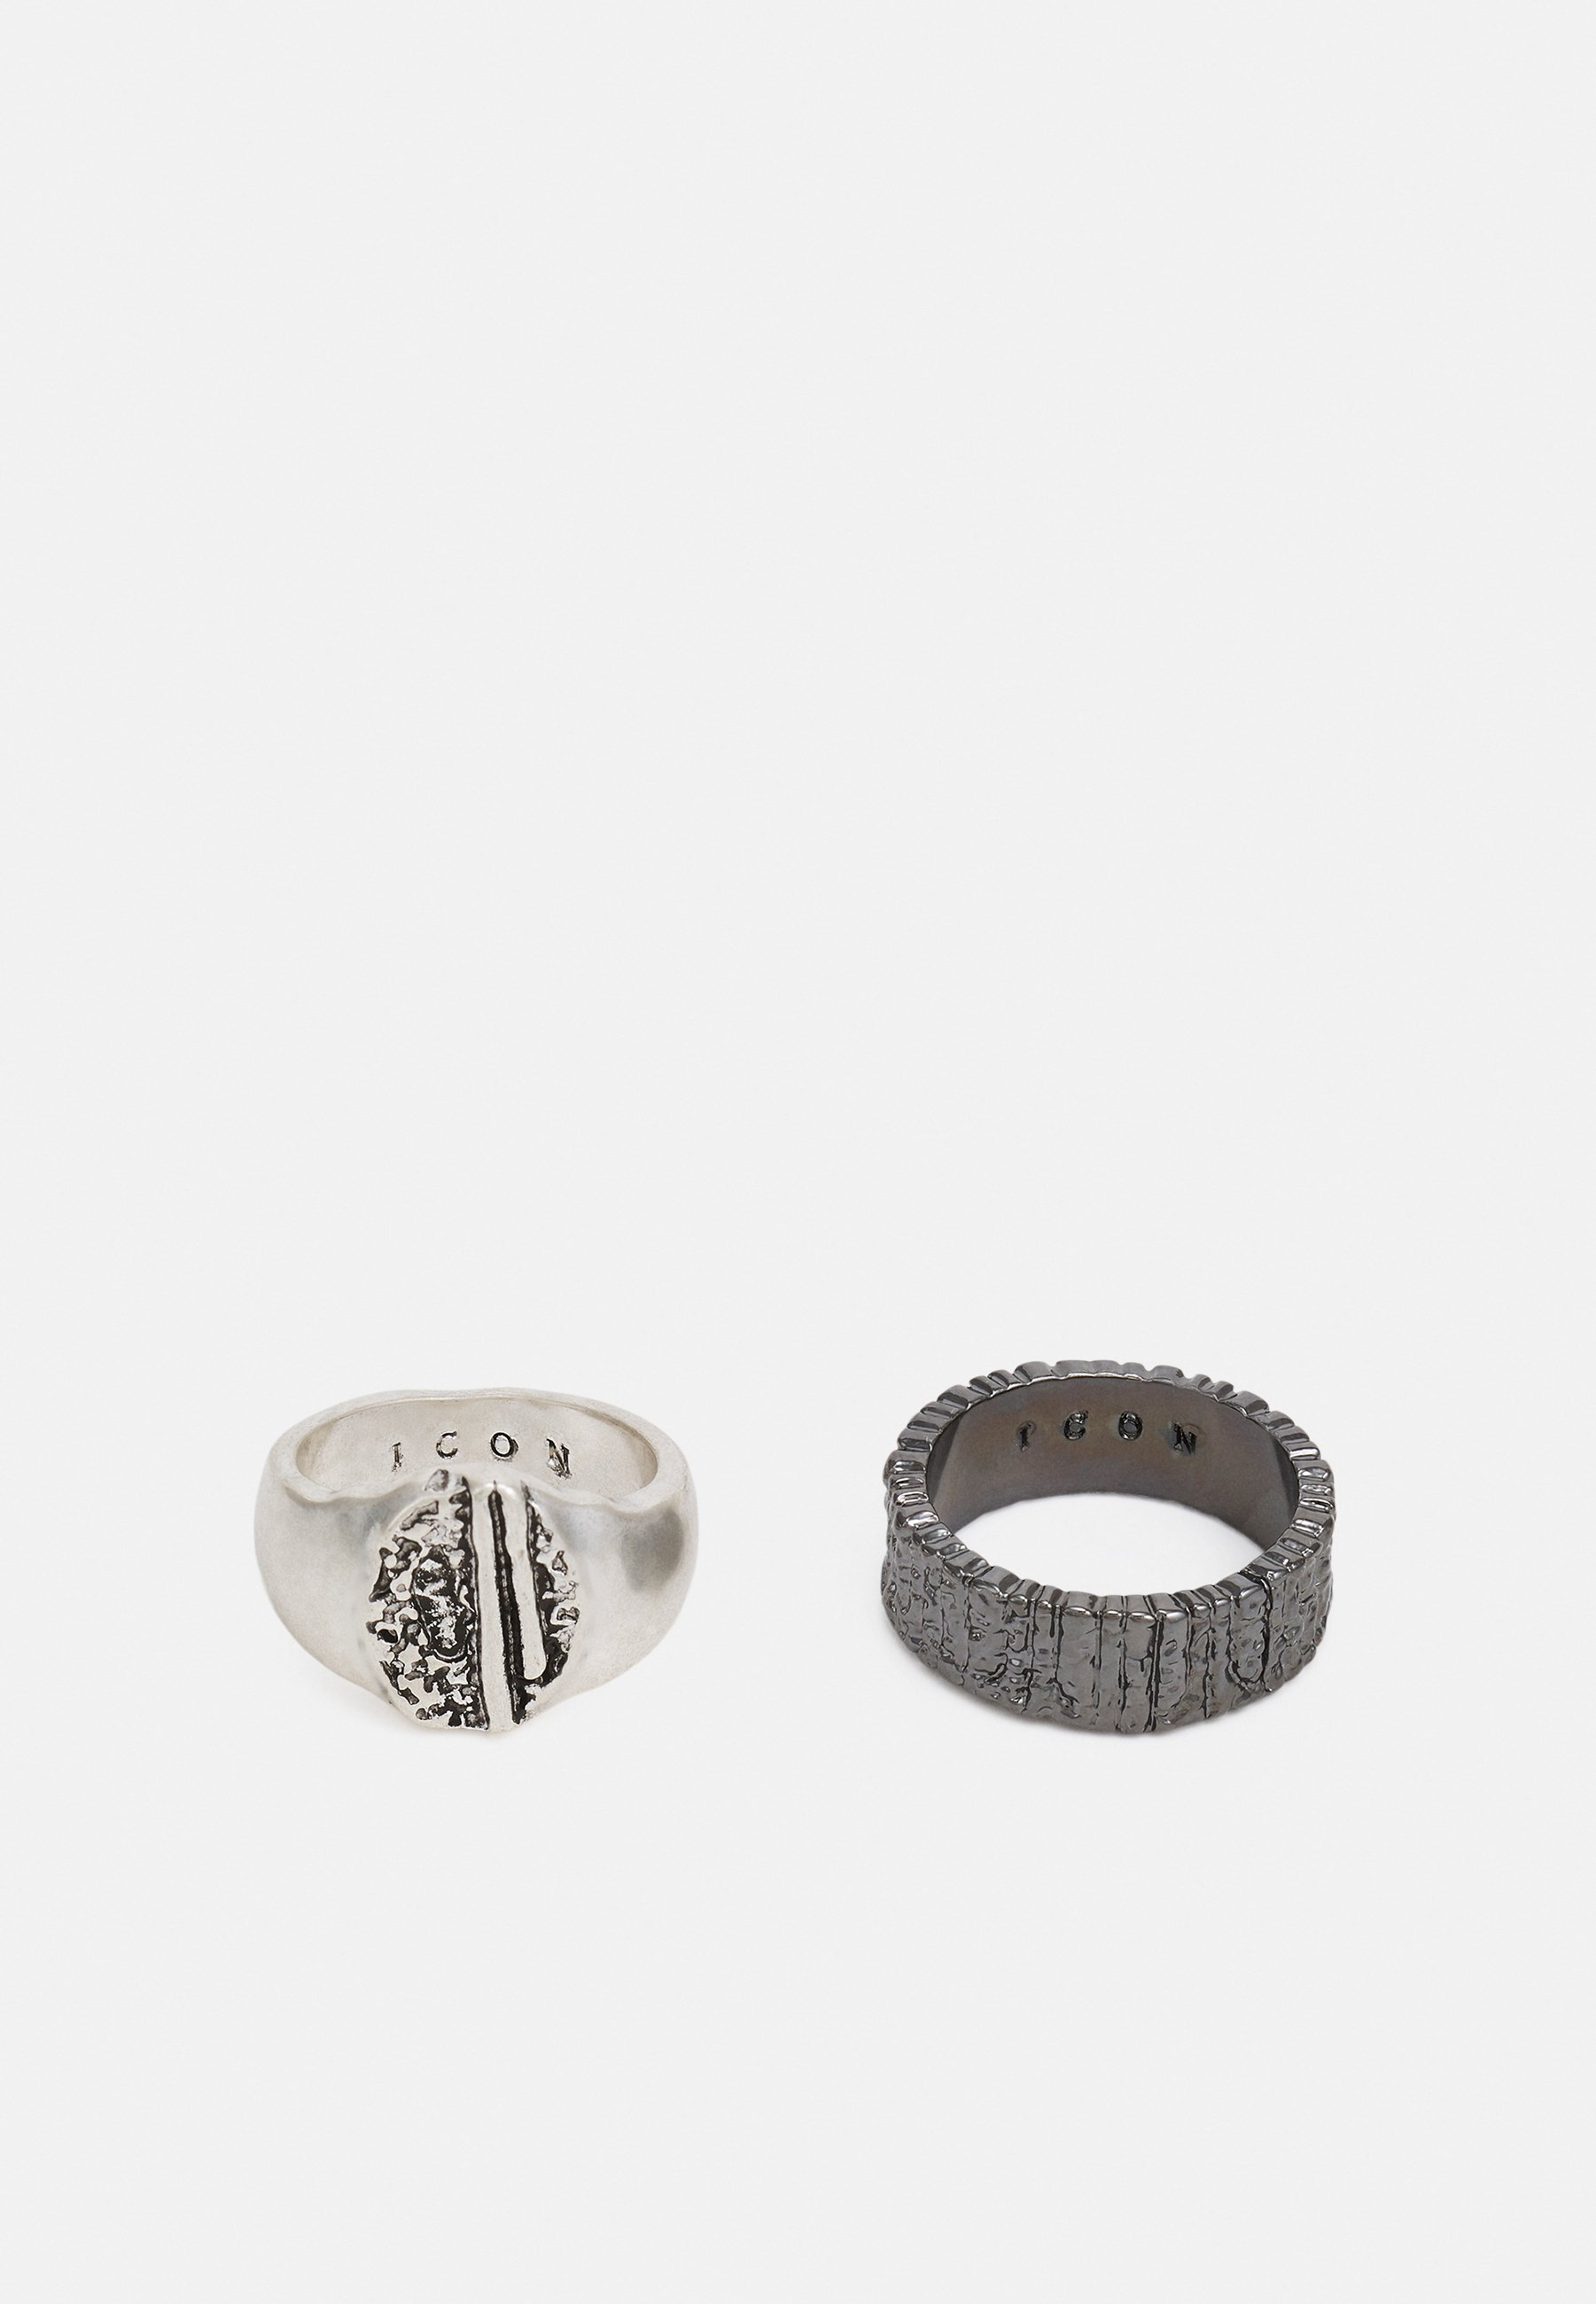 Homme COLLECTIVE CONSCIENCE TEXTURED 2 PACK - Bague